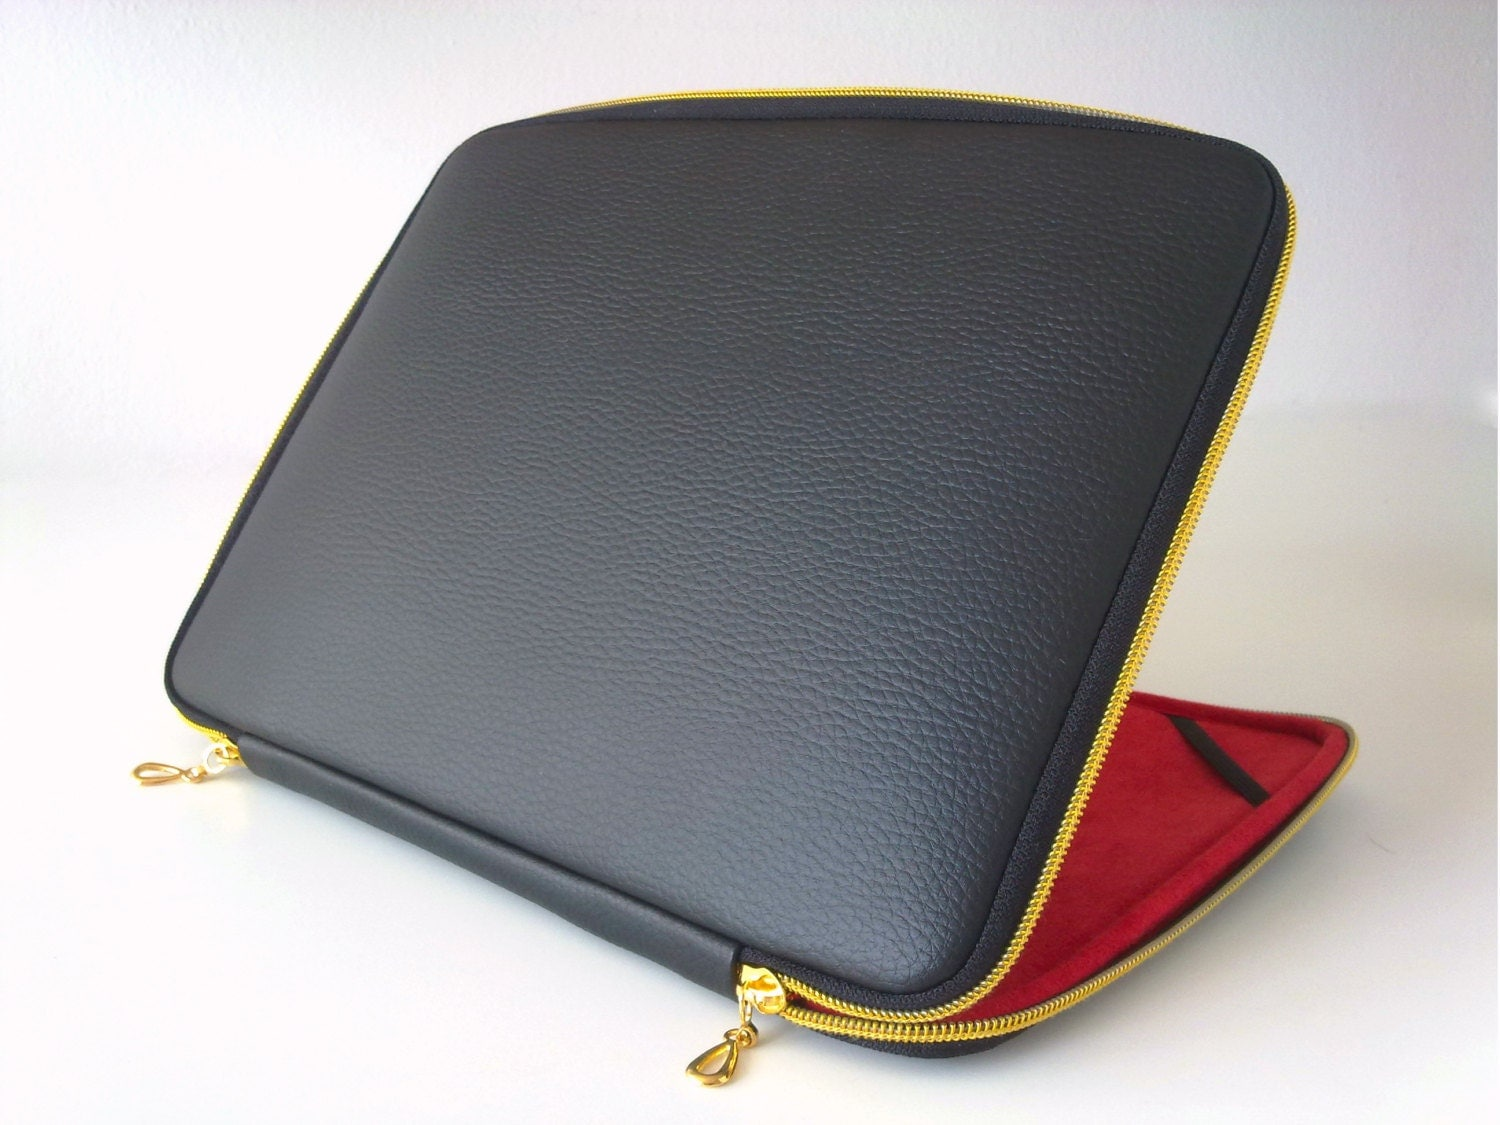 Black leather laptop caseleather caselaptop sleeveleather for Housse ordinateur portable 15 6 pouces